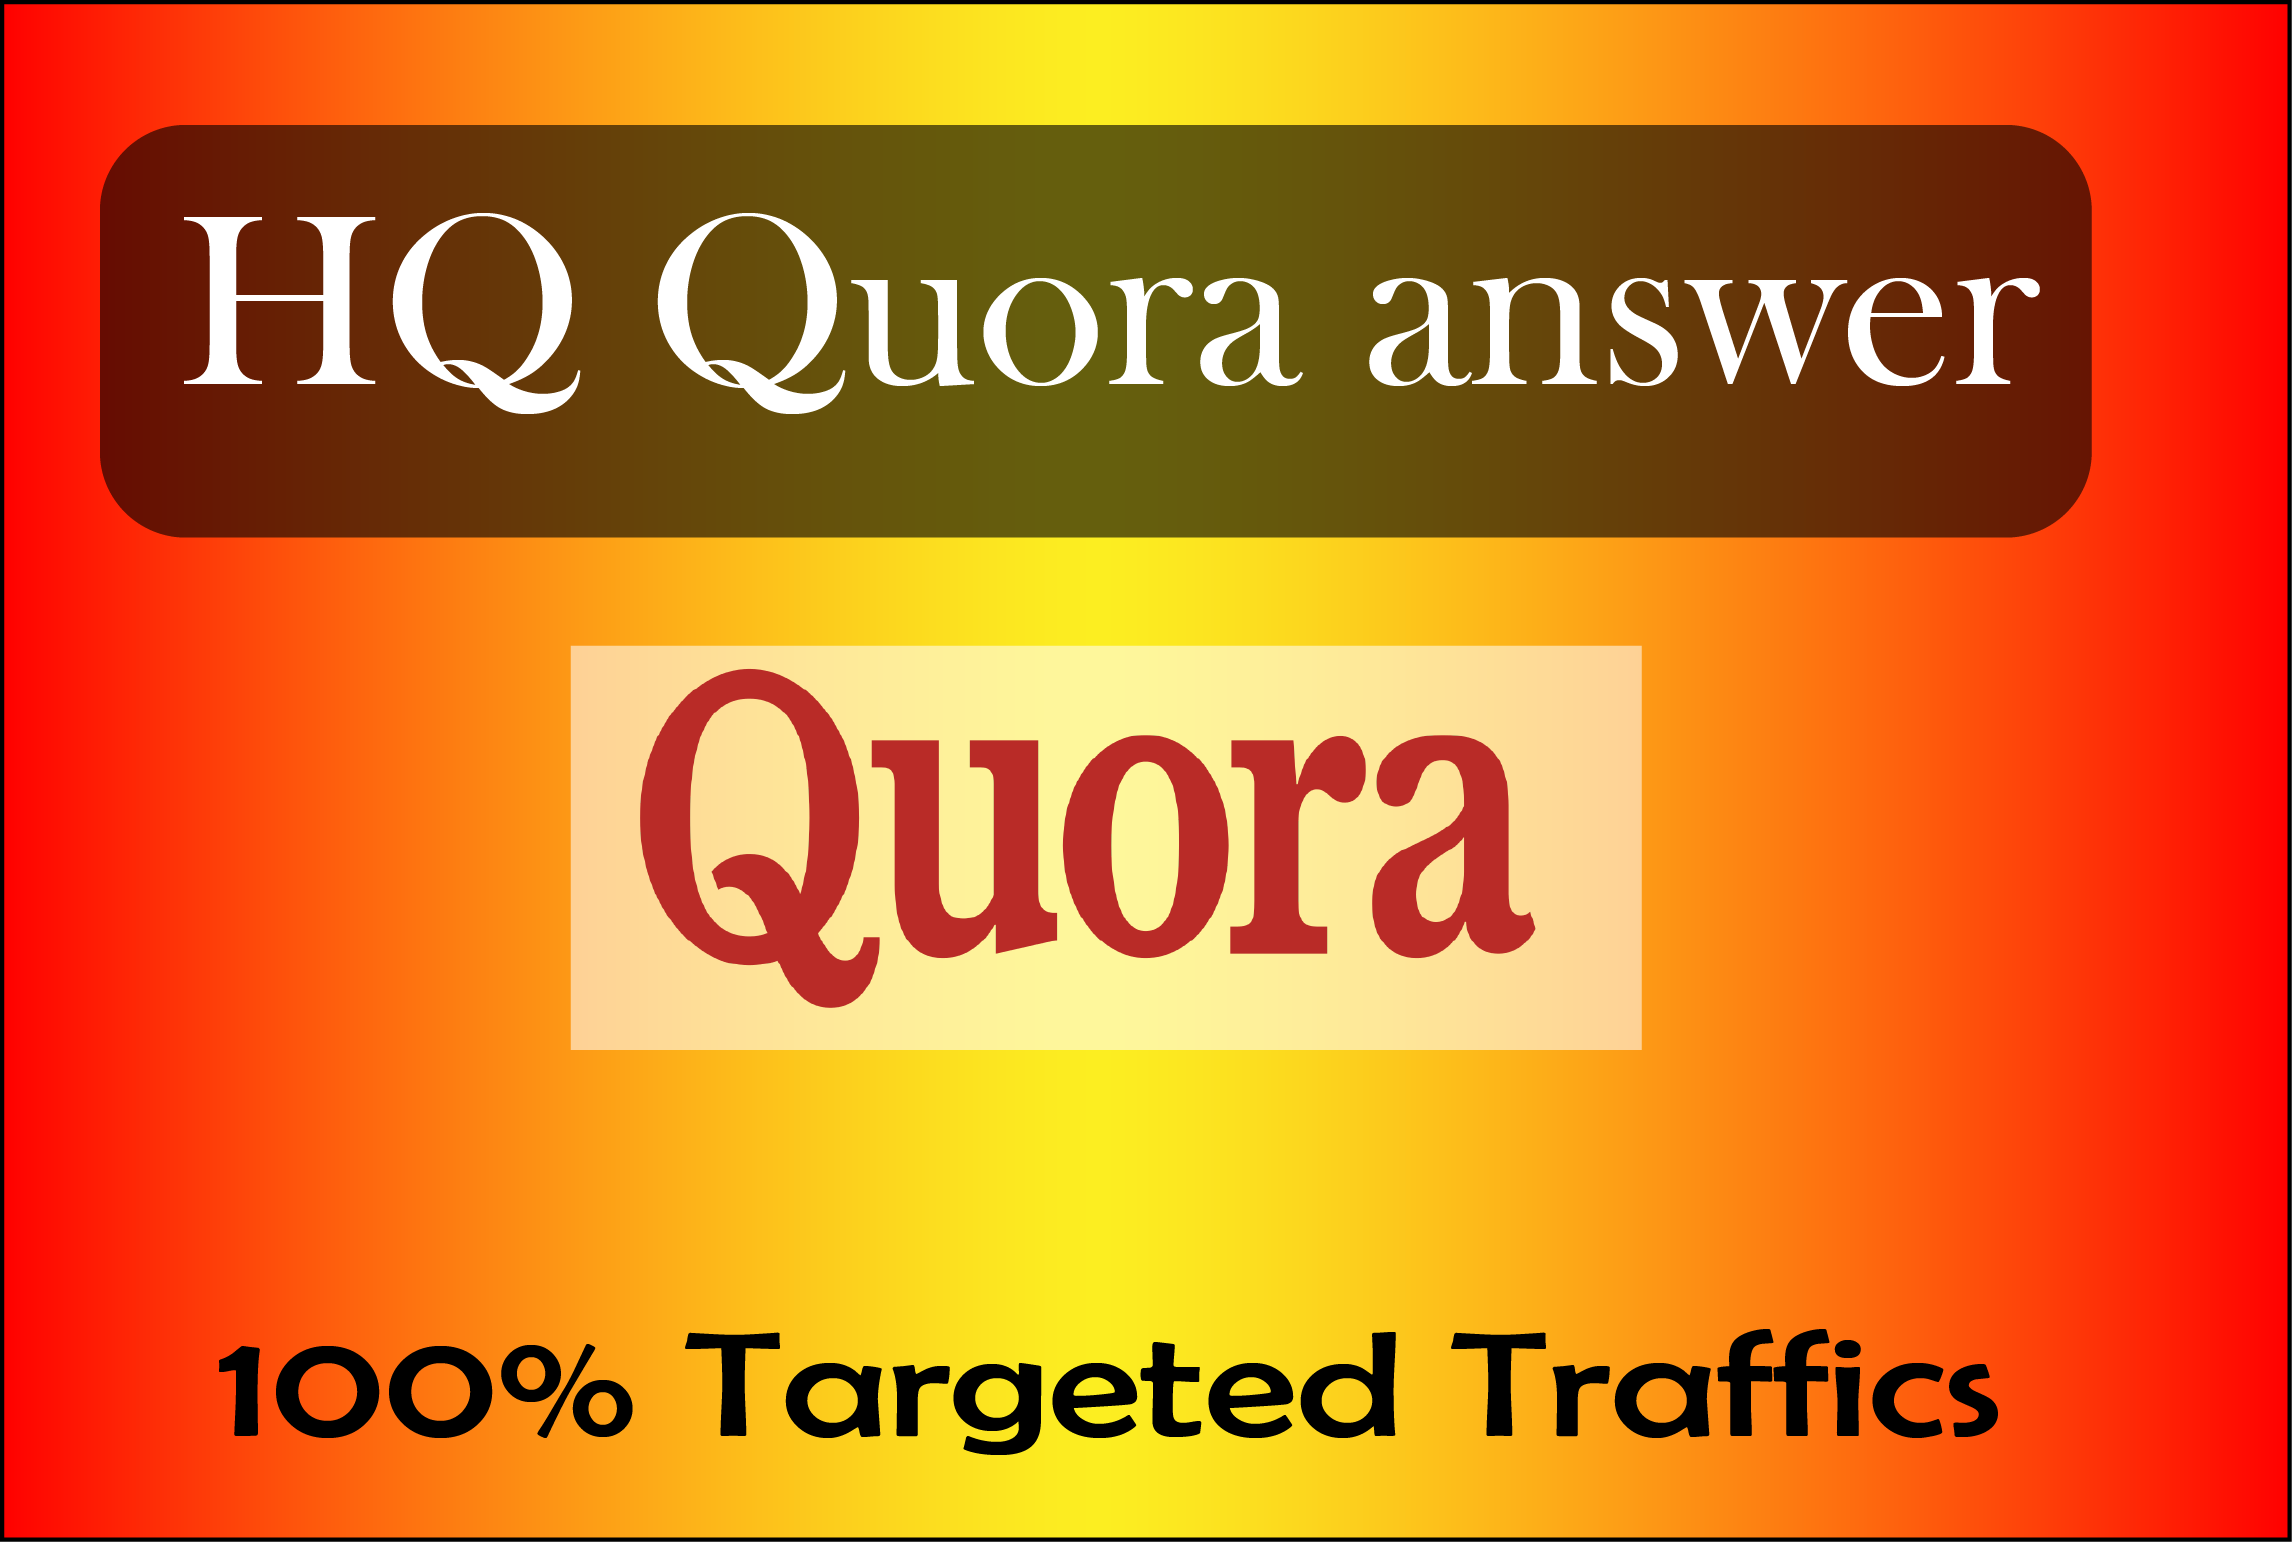 15 HQ Quora Answers For Guaranteed Traffic for your website